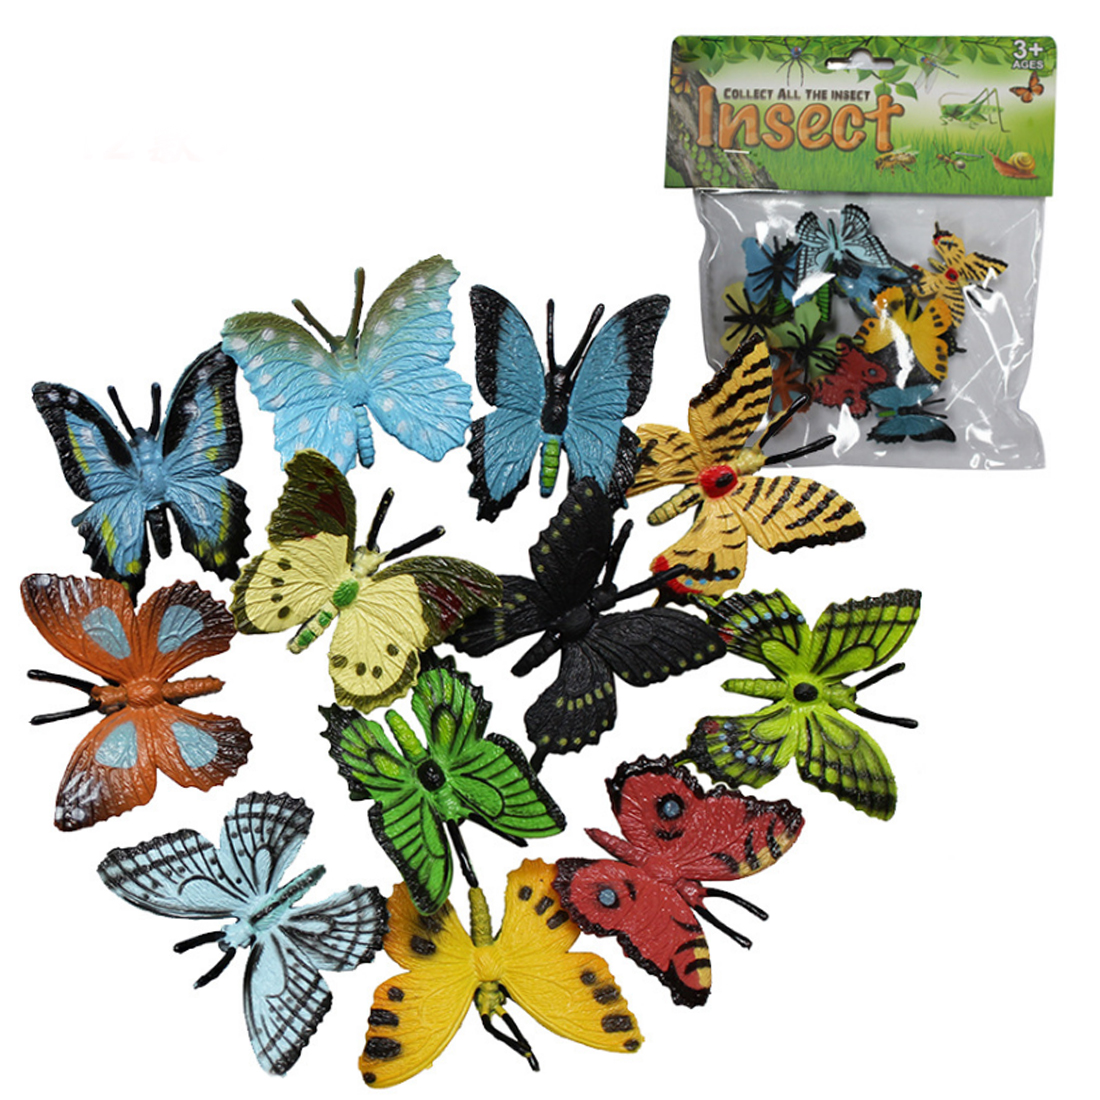 12Pcs Party Class Teaching Butterfly Model Kit Educational Toys for Children Learning Studying Biology Insects Toy Collection 12Pcs Party Class Teaching Butterfly Model Kit Educational Toys for Children Learning Studying Biology Insects Toy Collection